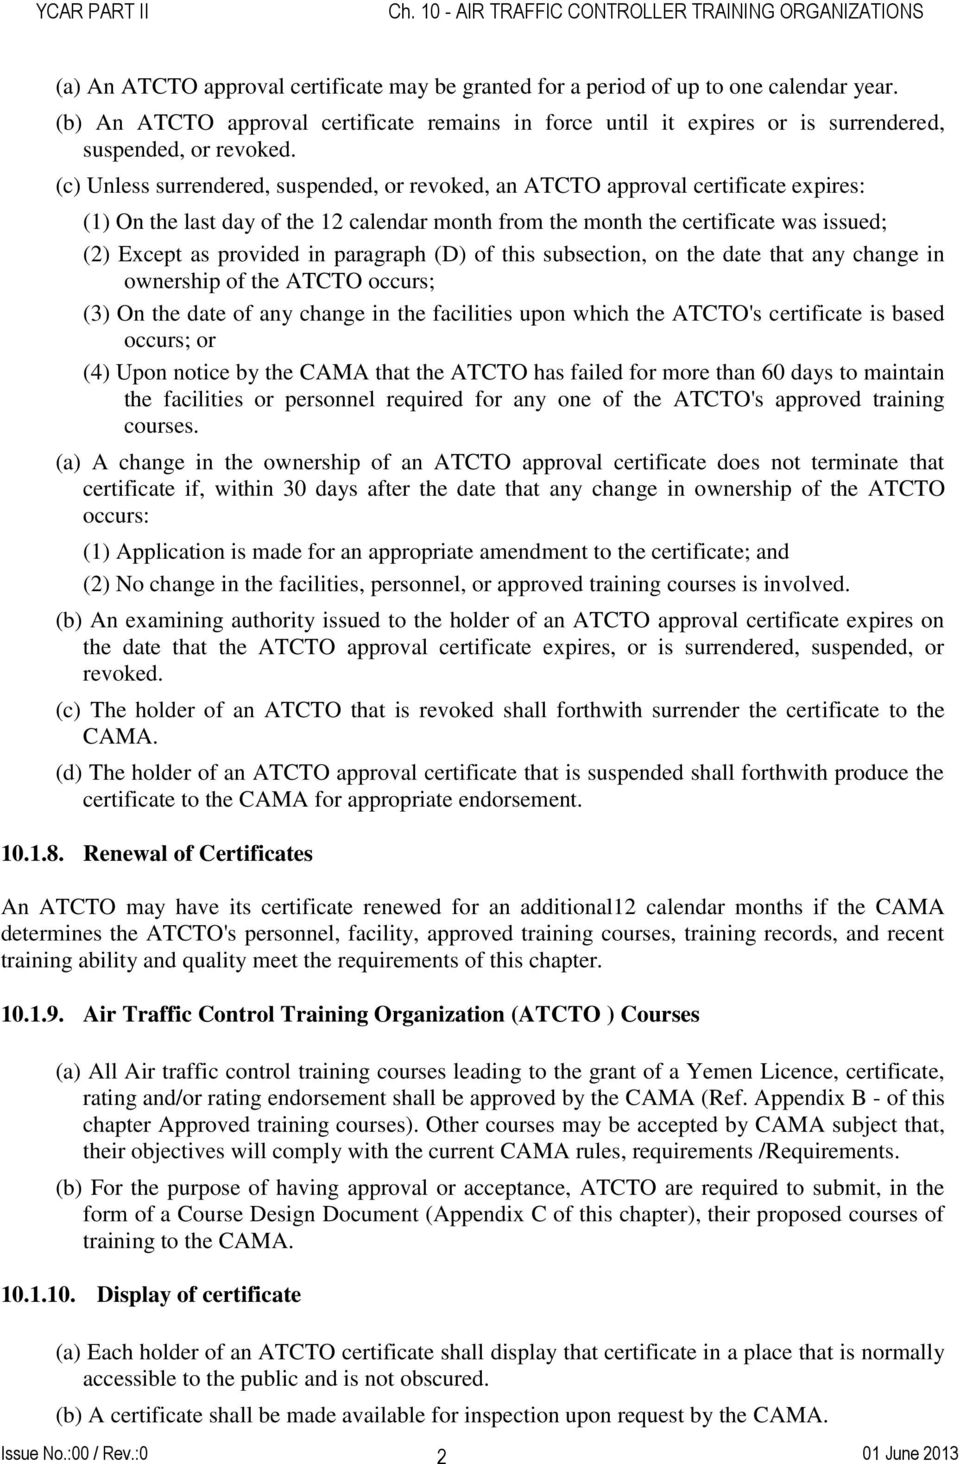 paragraph (D) of this subsection, on the date that any change in ownership of the ATCTO occurs; (3) On the date of any change in the facilities upon which the ATCTO's certificate is based occurs; or